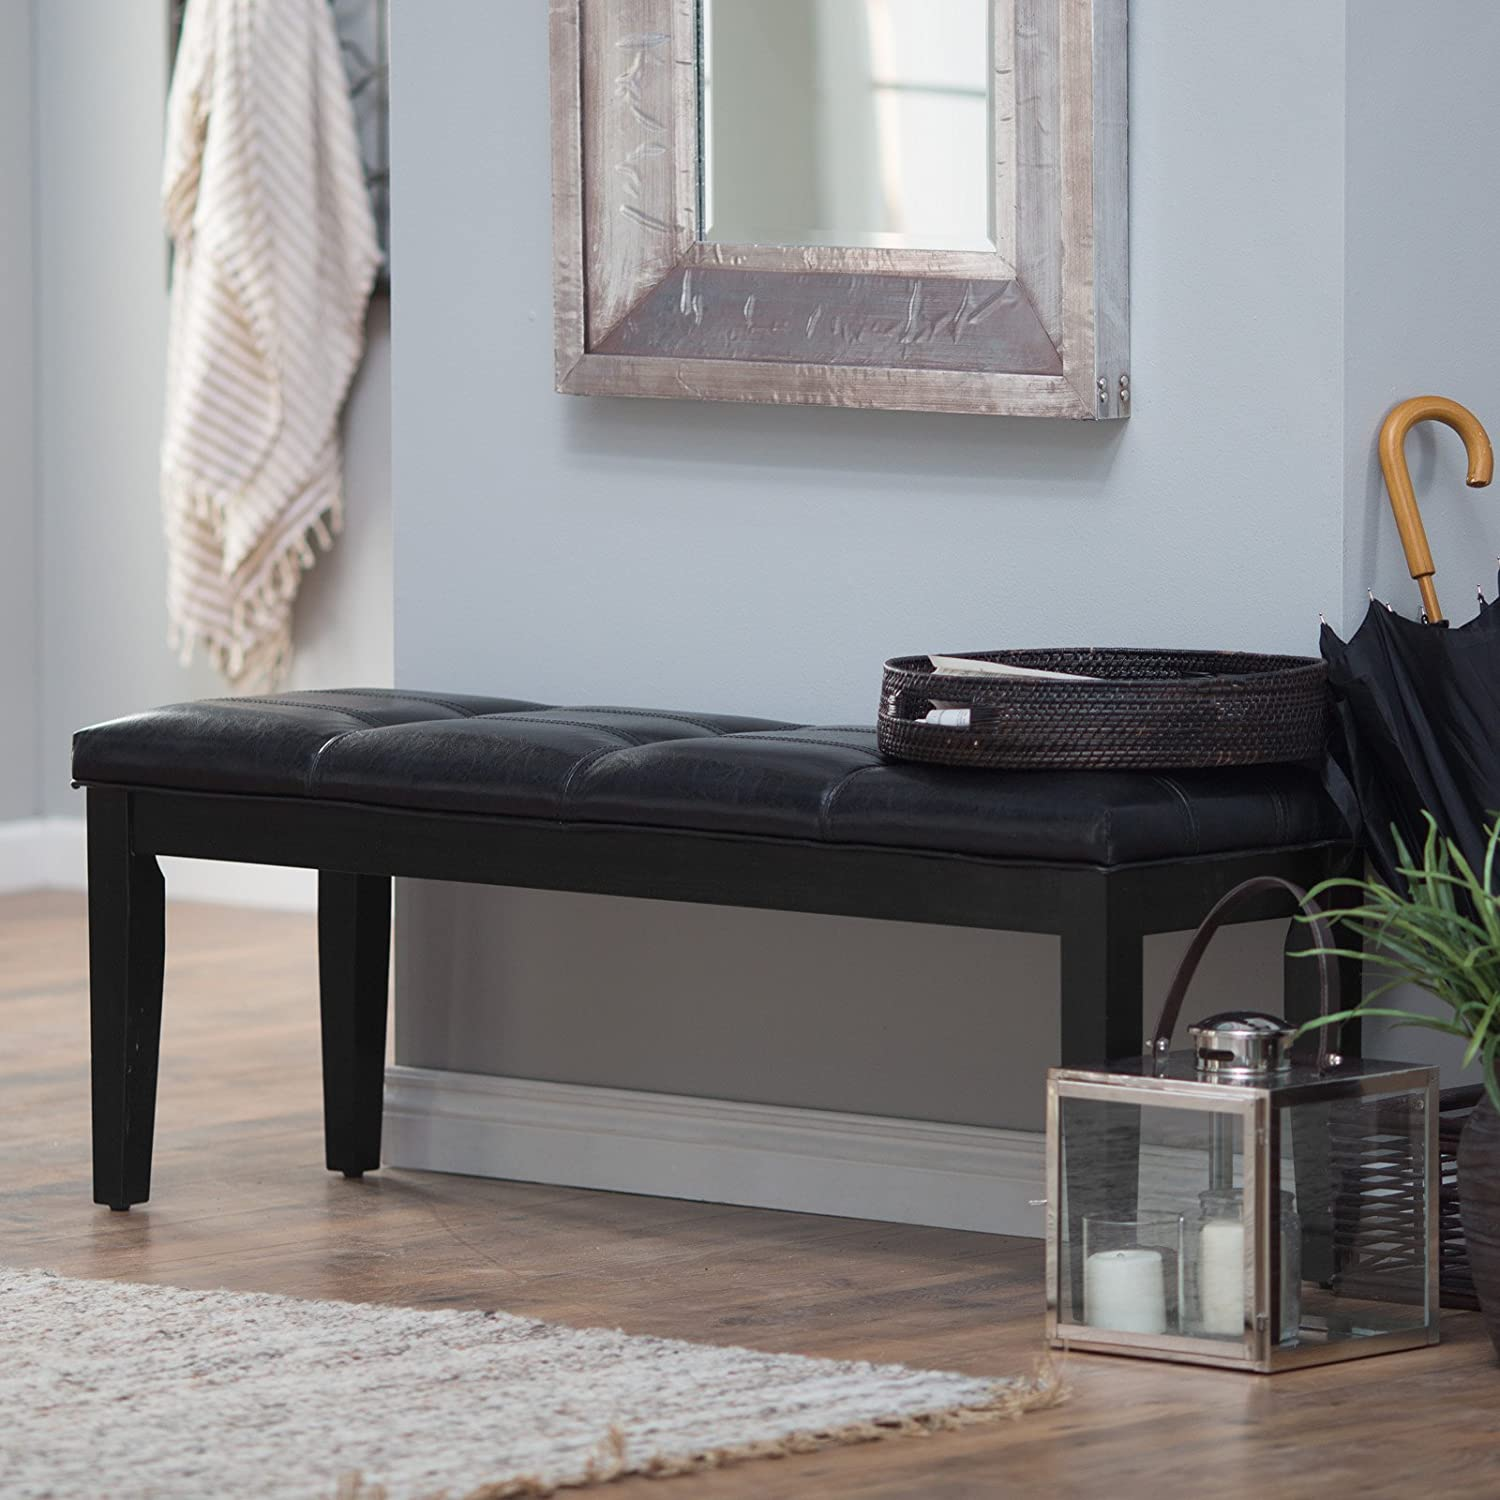 Amazon.com : Traditional Bench With Cushion - Backless Armless ...